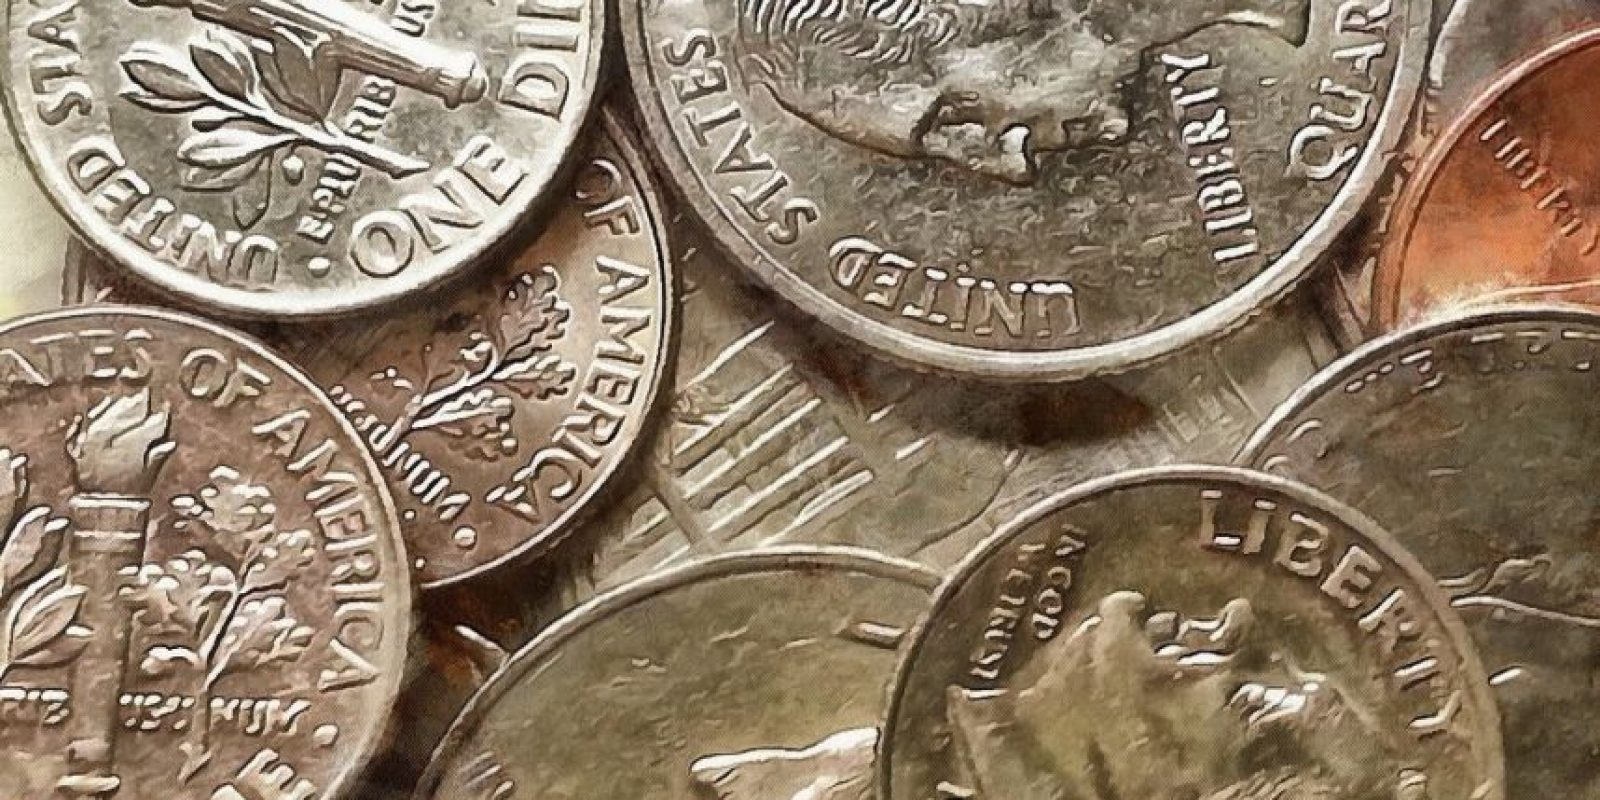 Hay cinco tipos de monedas, en ellas aparecen los presidentes Abraham Lincoln, Thomas Jefferson, Franklin D. Roosevelt, George Washington y John F. Kennedy. Foto: stock-free.org